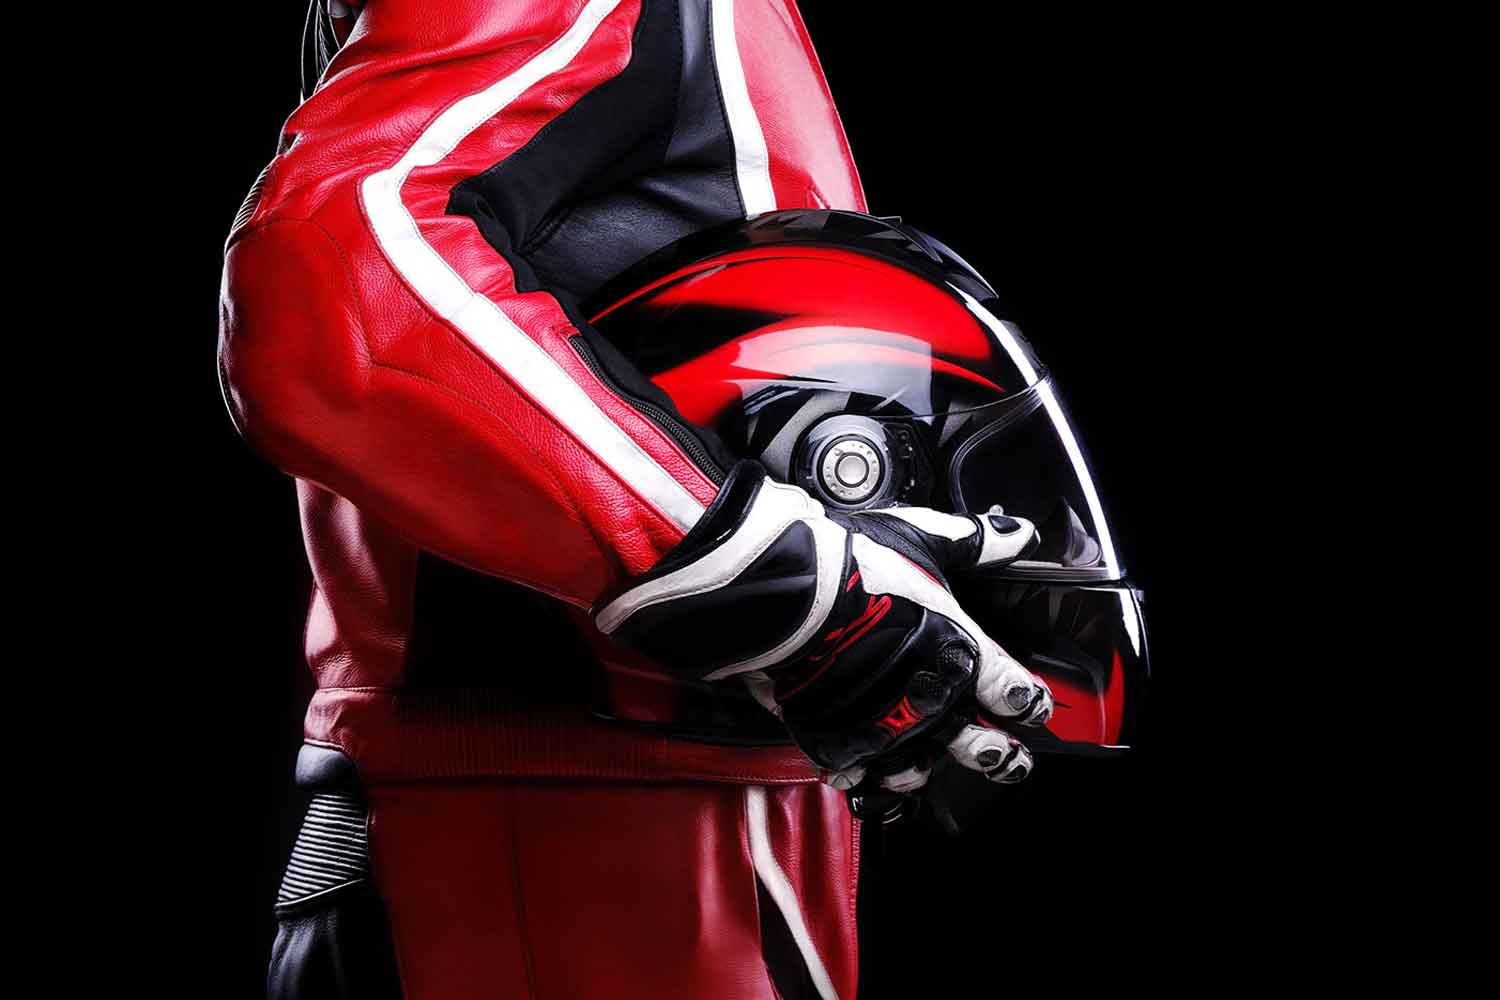 motogp leather suit